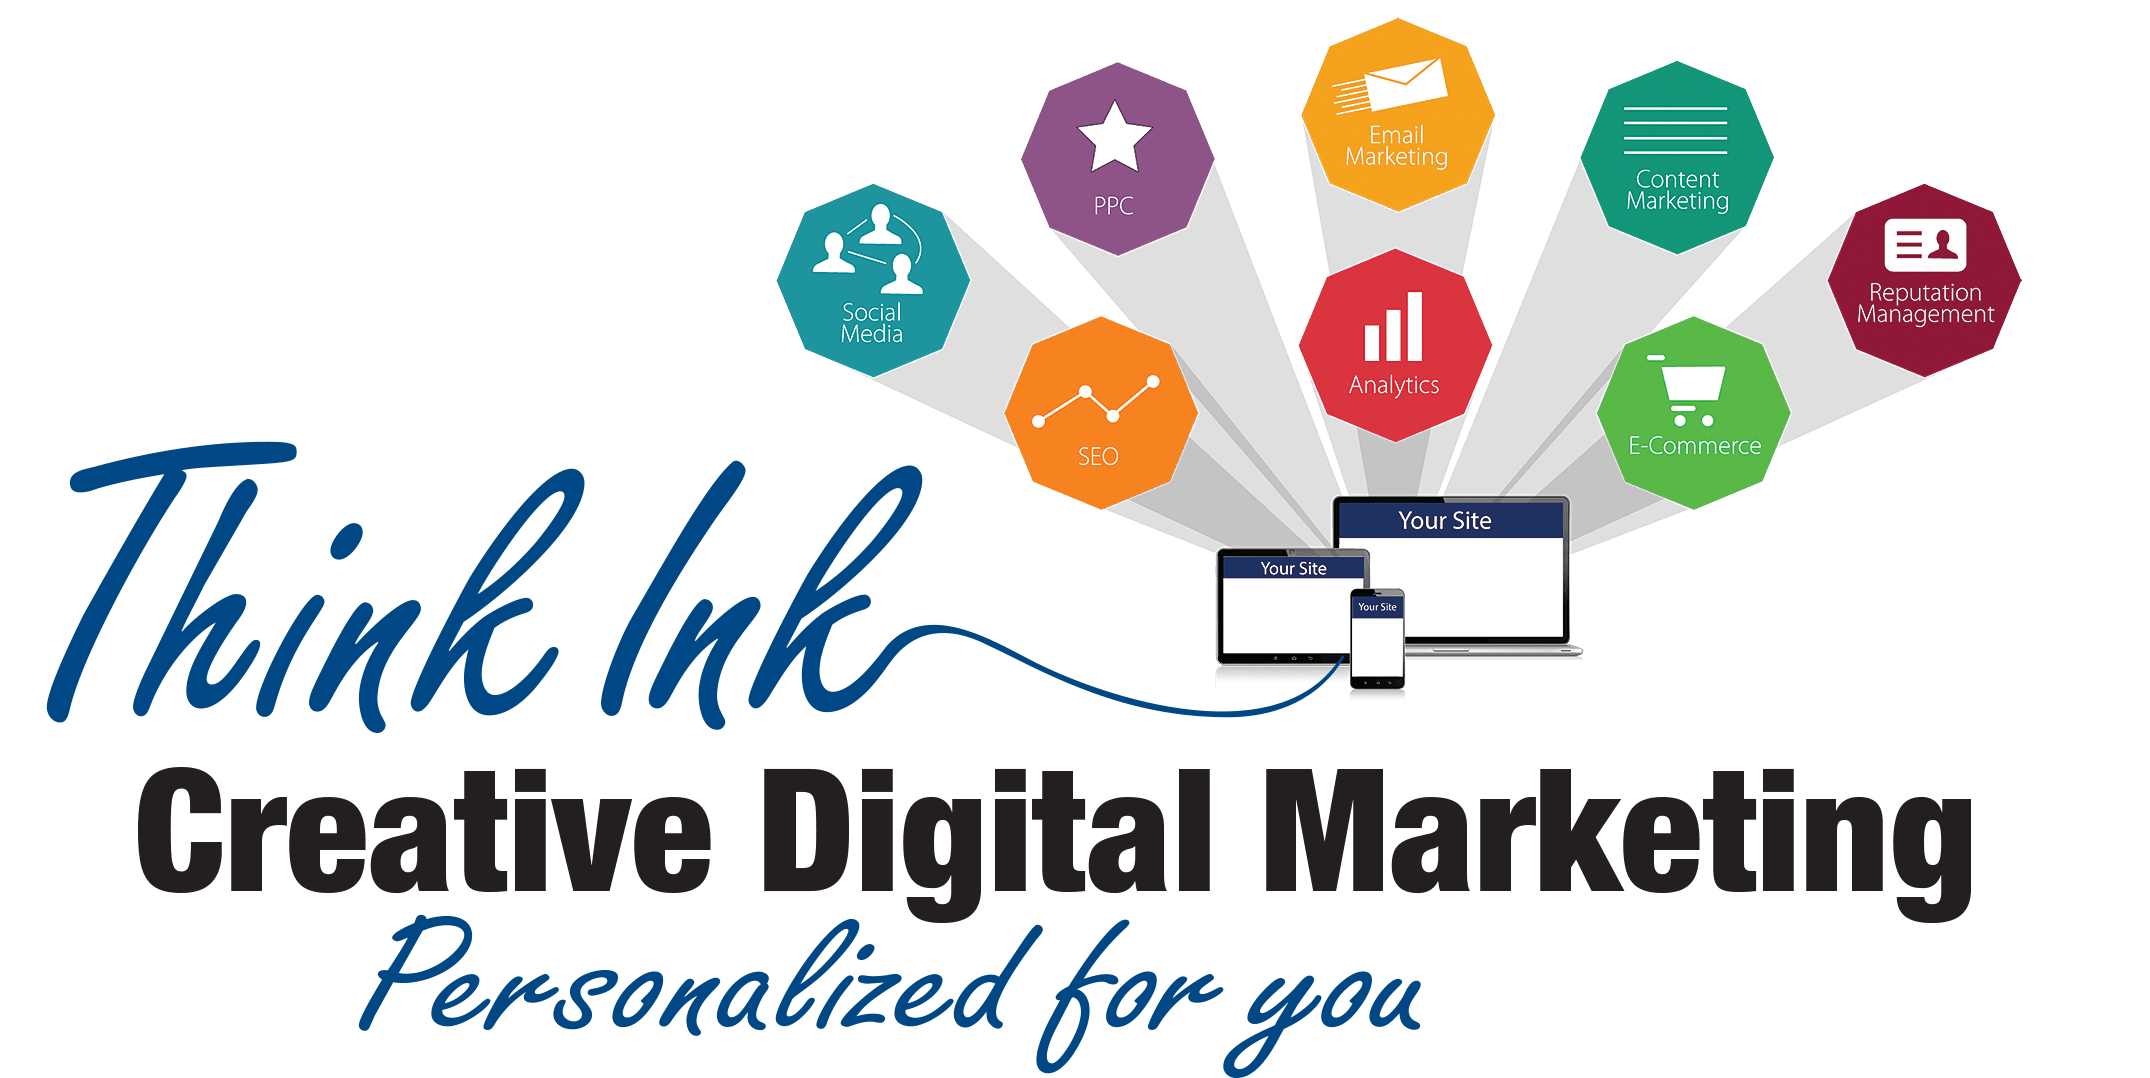 Think Ink Digital Marketing